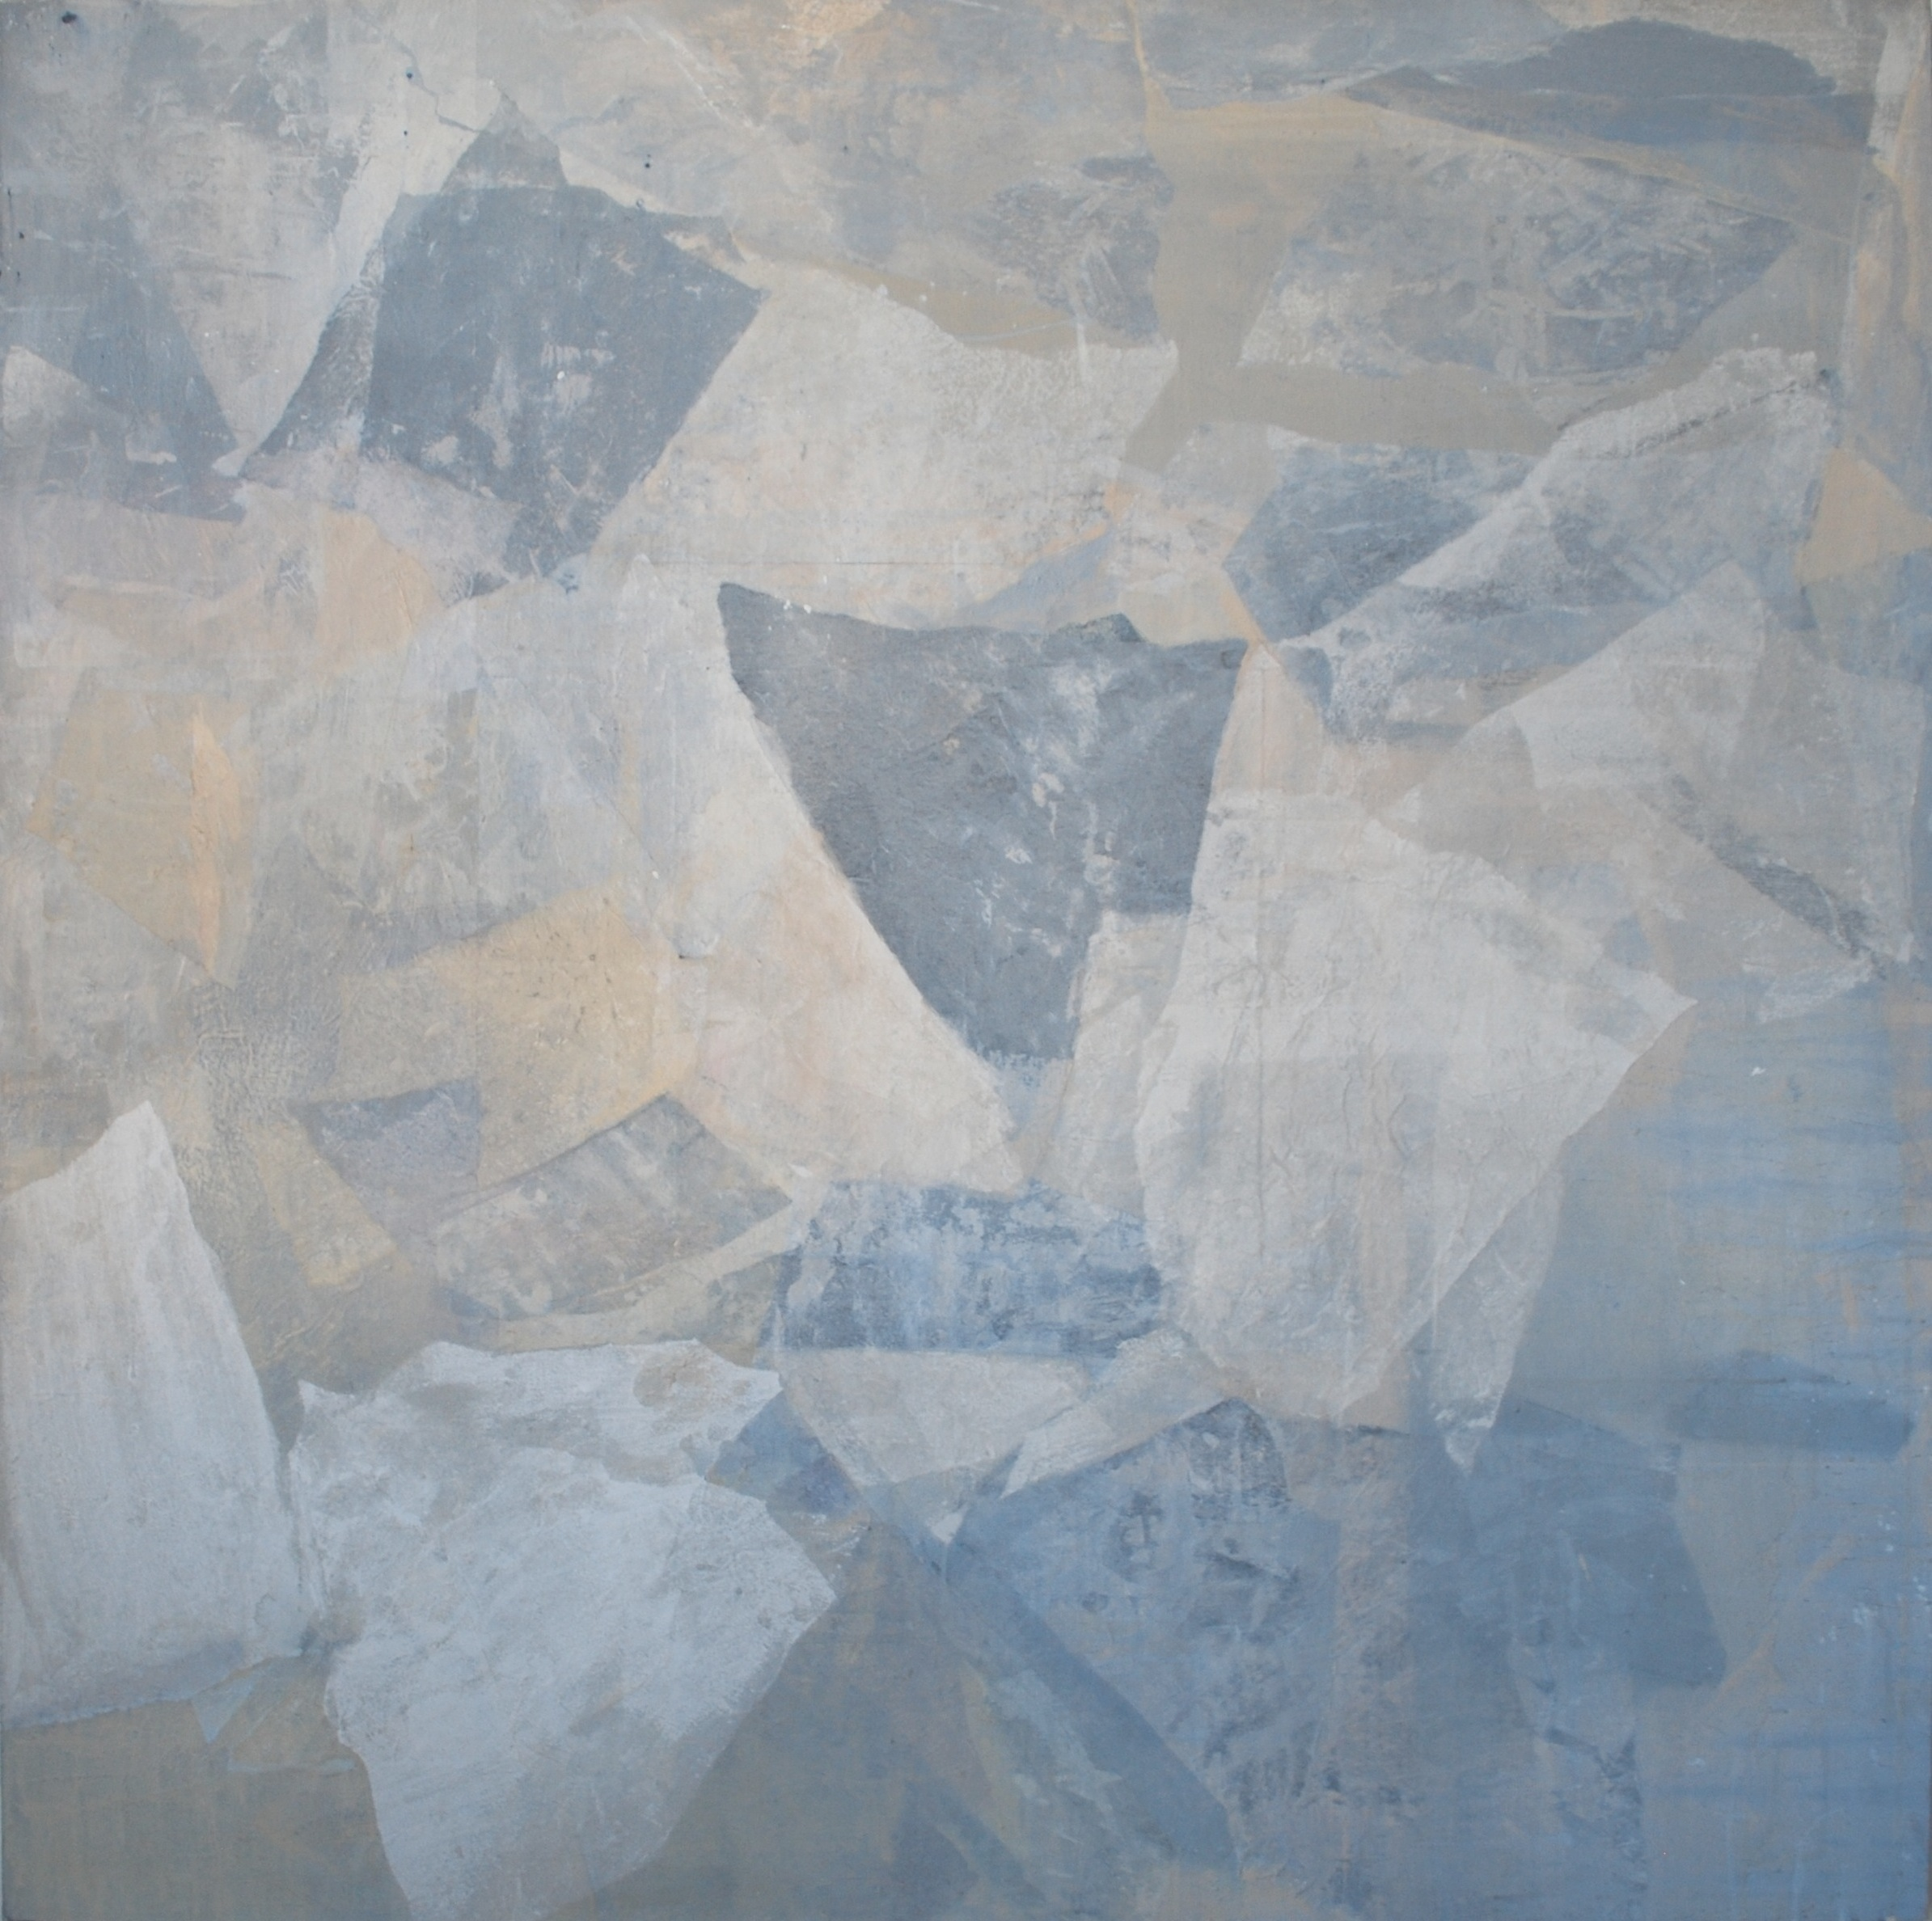 SoHyun Bae, Wrapped Shards #9, 2002, rice-paper and pure pigment on canvas, 60 x 60 inches